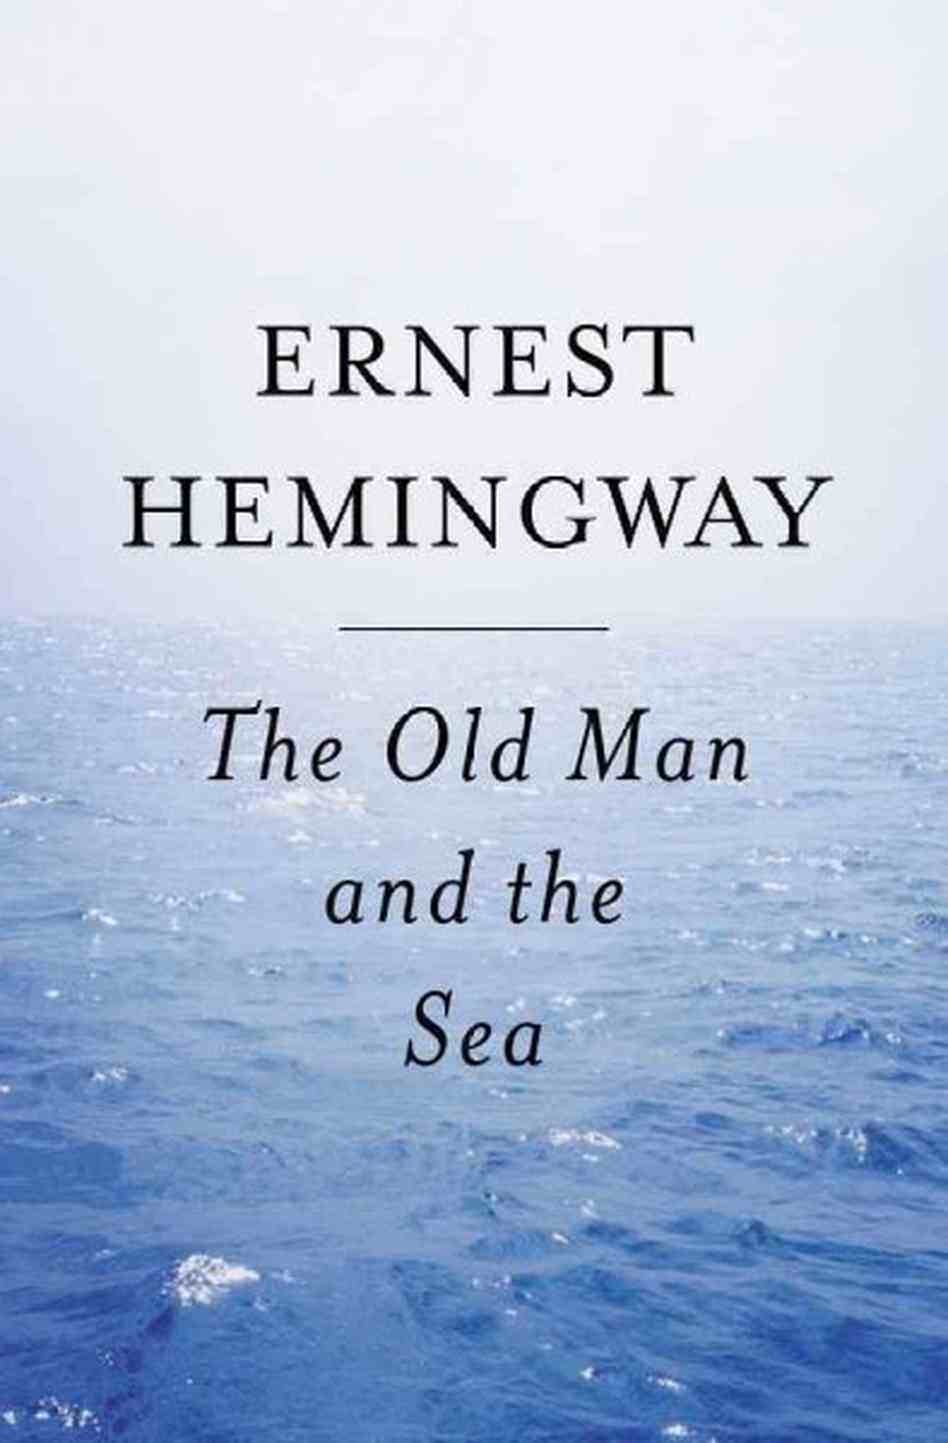 the story of santiago in the old man and the sea by ernest hemingway A short summary of ernest hemingway's the old man and the sea the old man and the sea is the story of an the old man's hero, joe dimaggio santiago is.